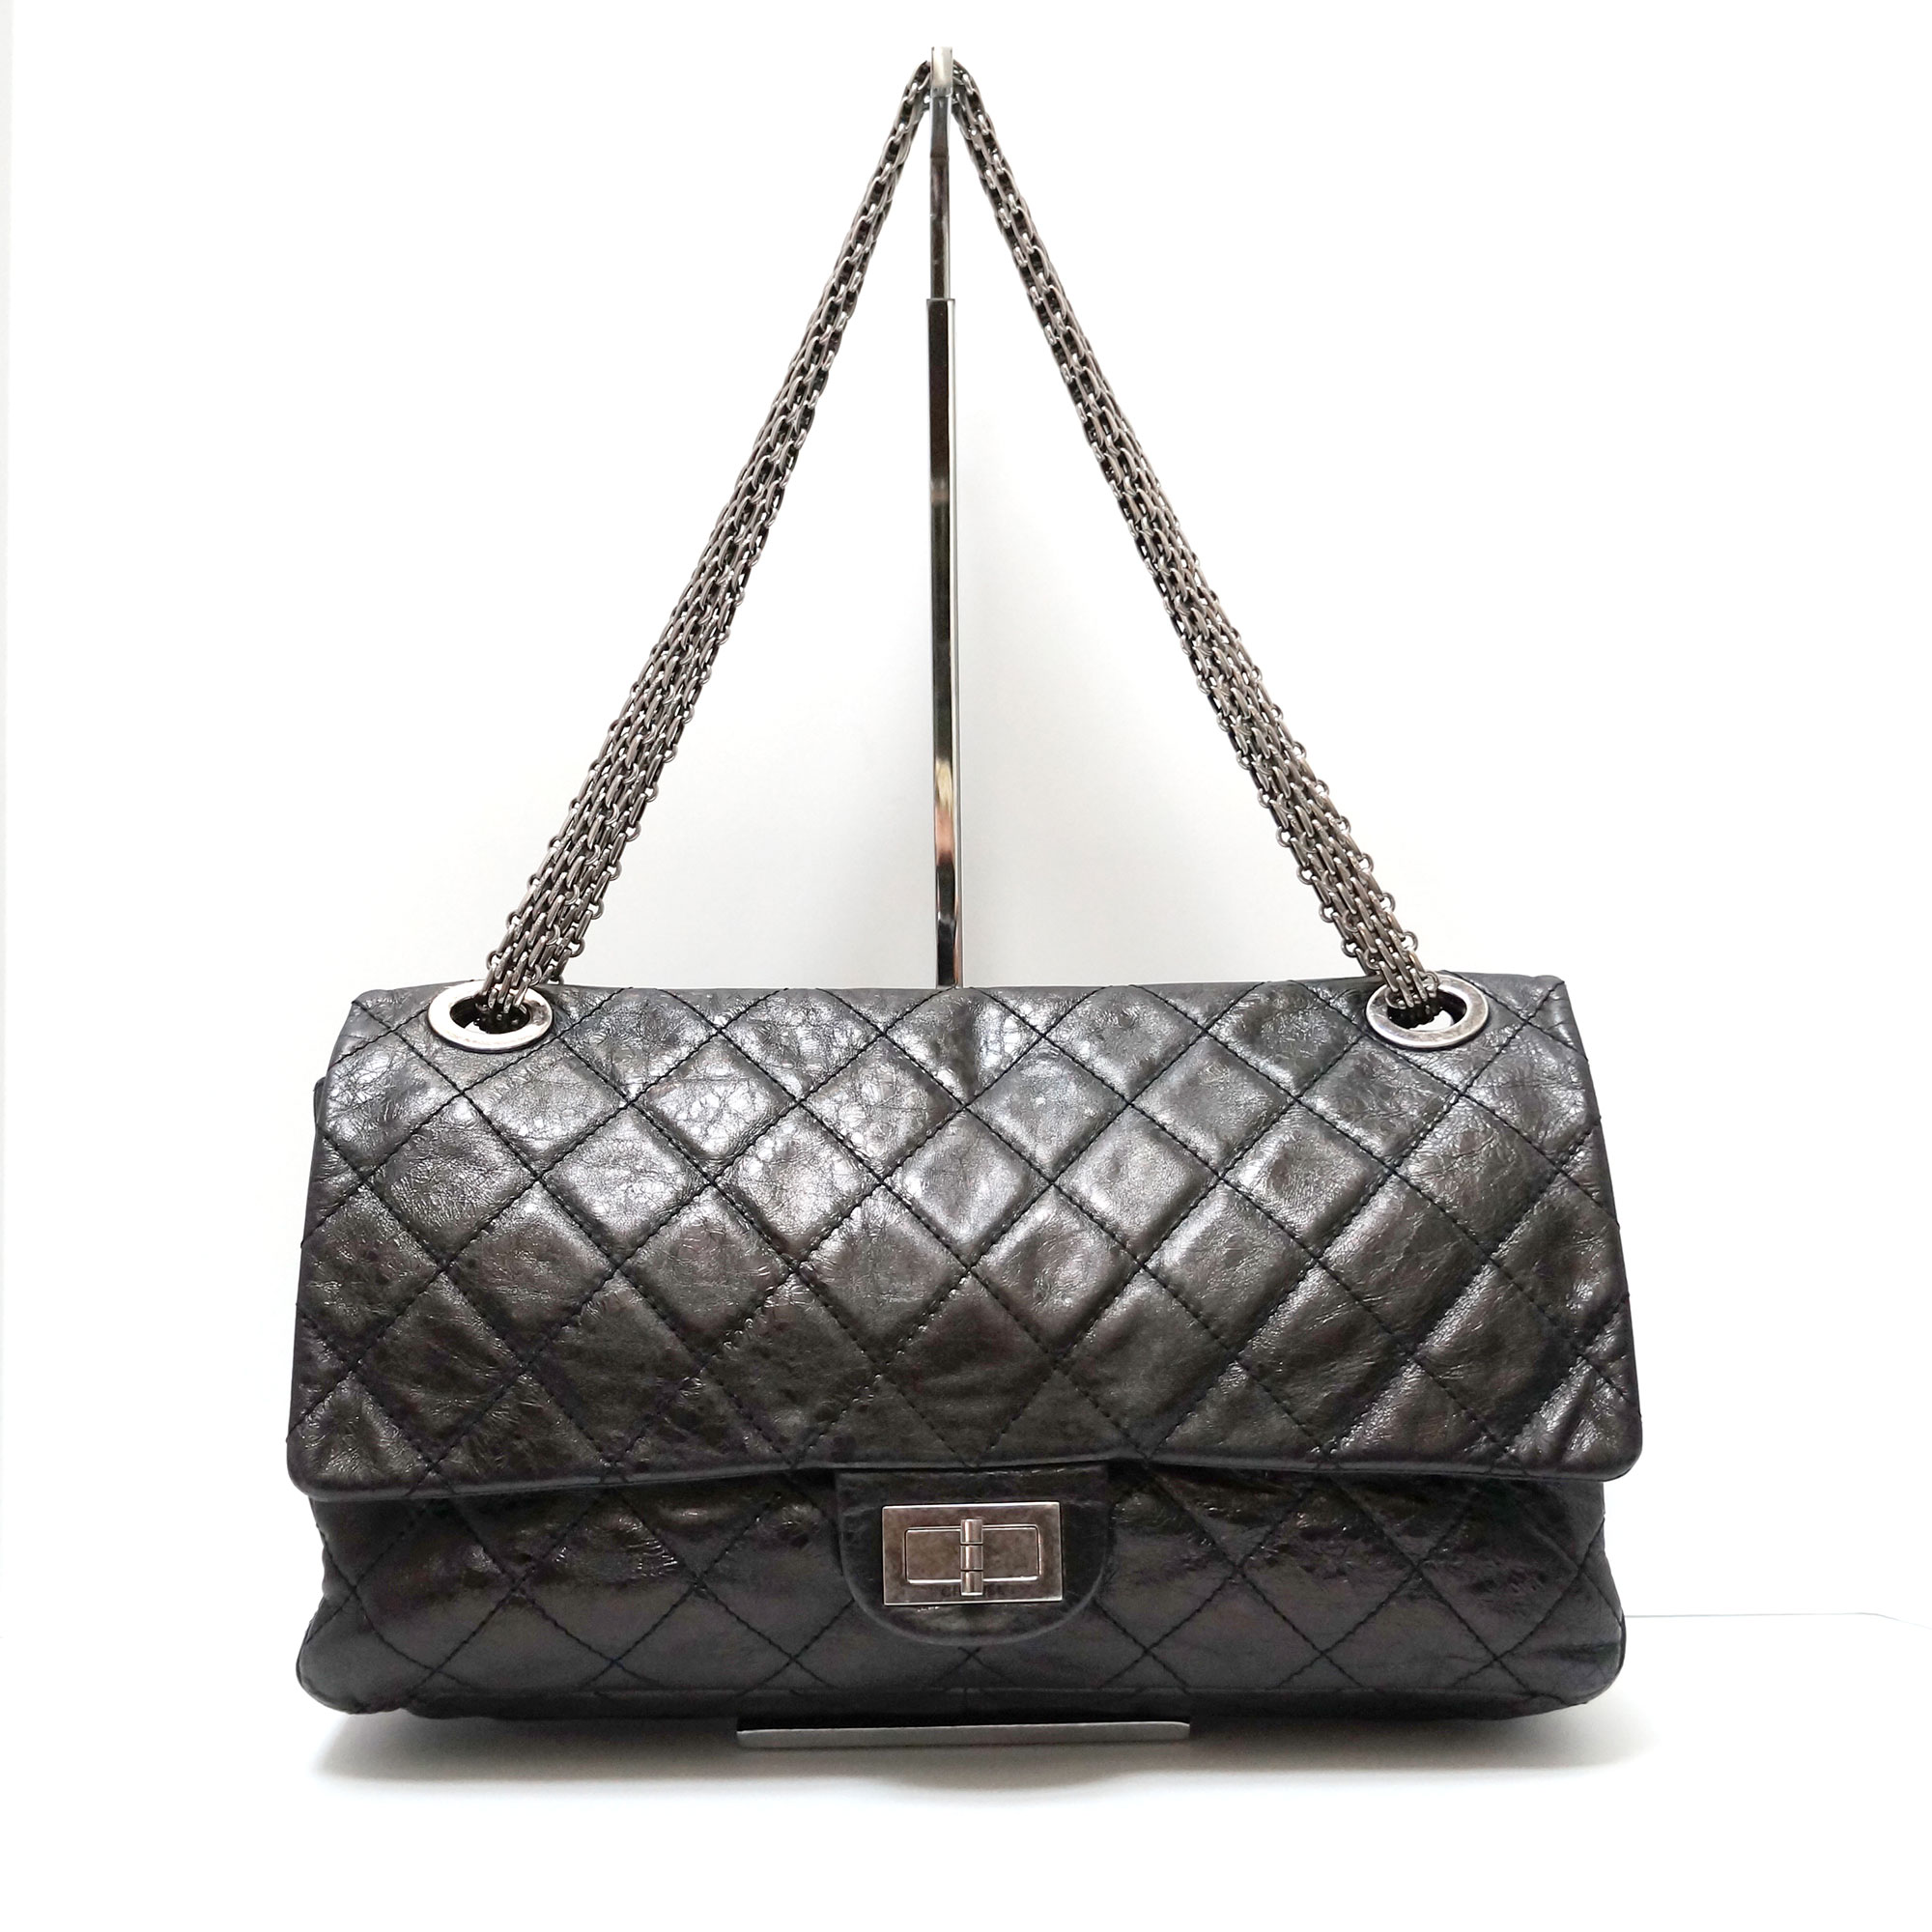 827d1ca7a2ef36 Chanel 2.55 Reissue Jumbo 228 Black Aged Leather Bag | | My Personal ...